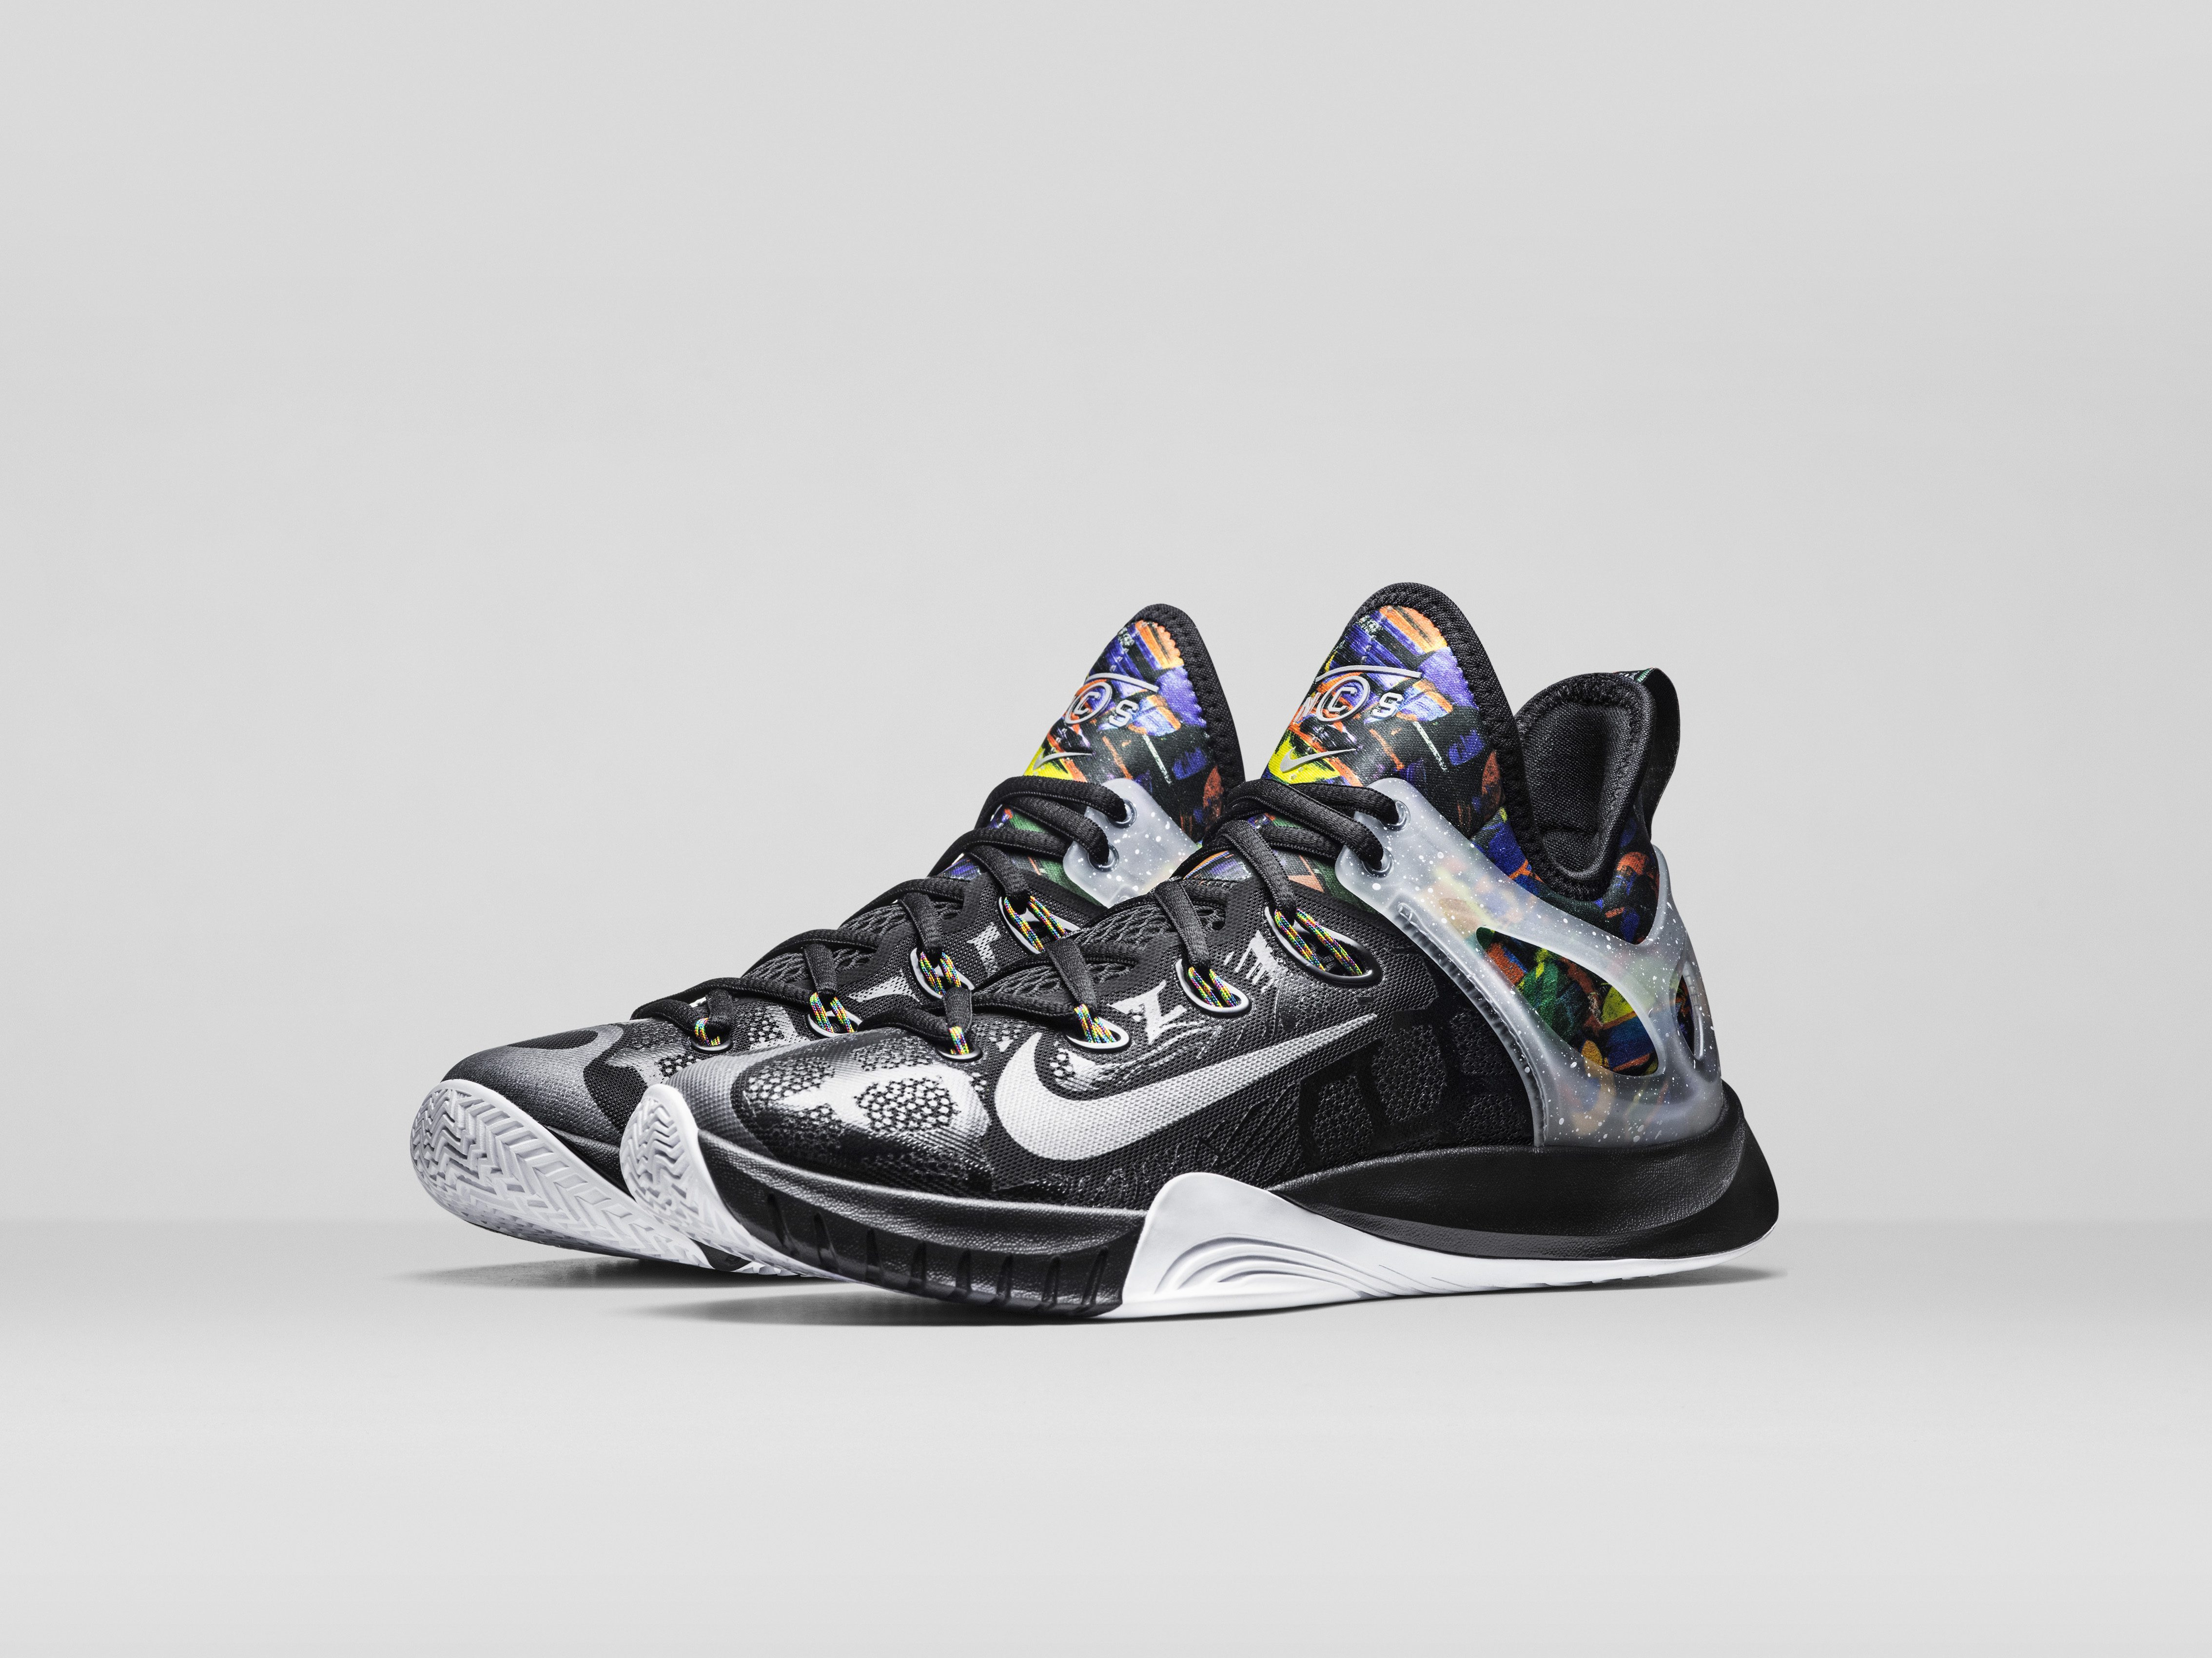 9ba8af319947 The Nike Basketball Net Collectors Society Collection consists of two  basketball performance shoes — the Nike Hyperchase and Nike Zoom HyperRev  2015.